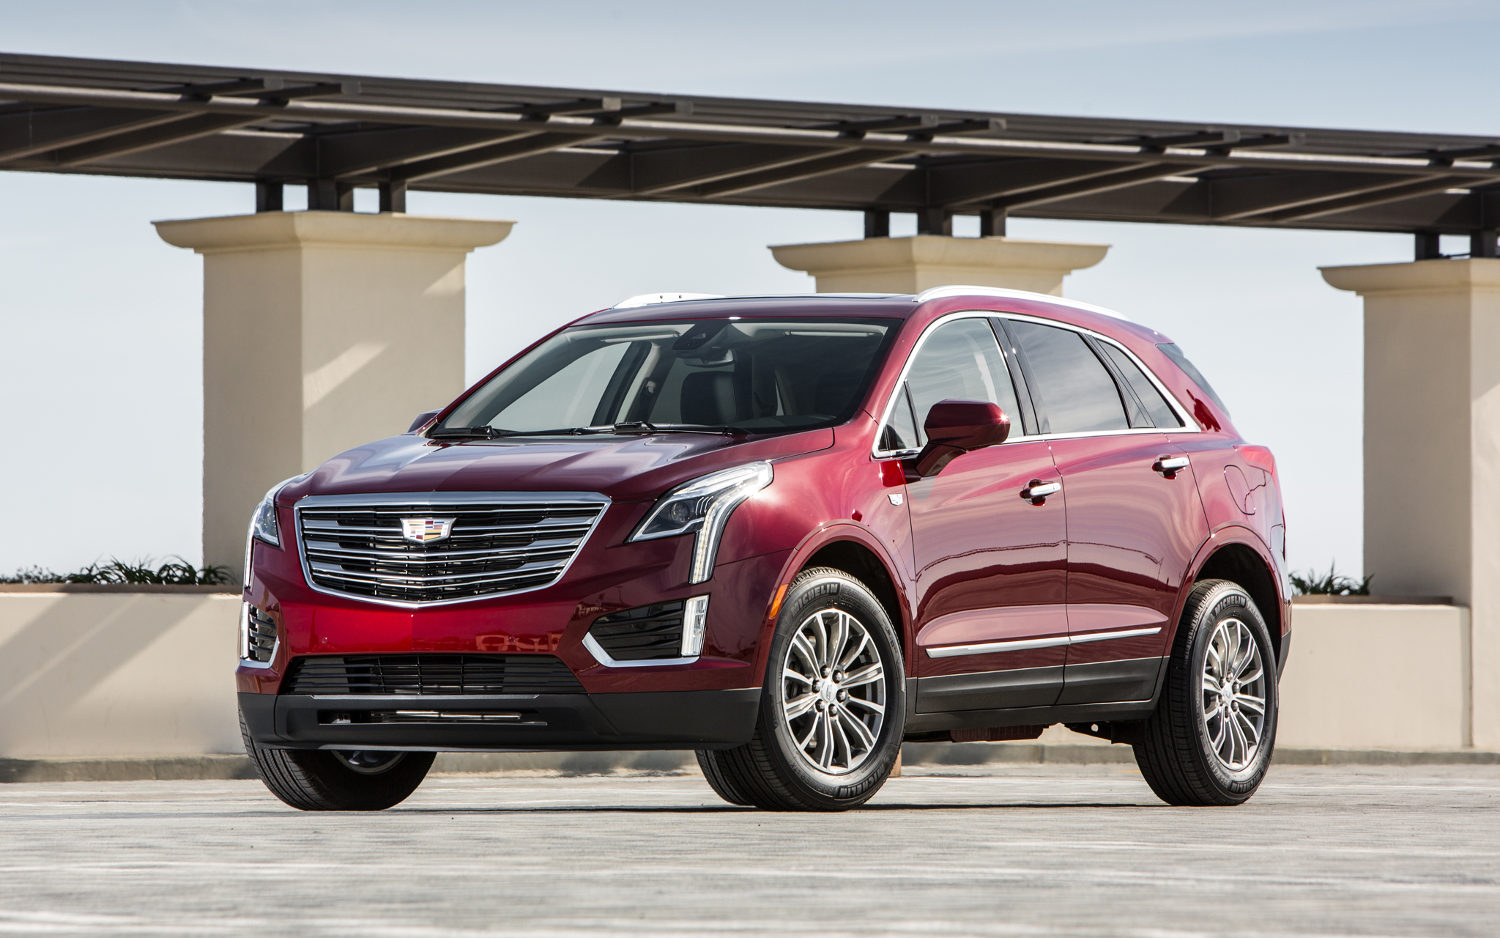 Inspirational Does the 2017 Cadillac Xt5 Have A Cd Player